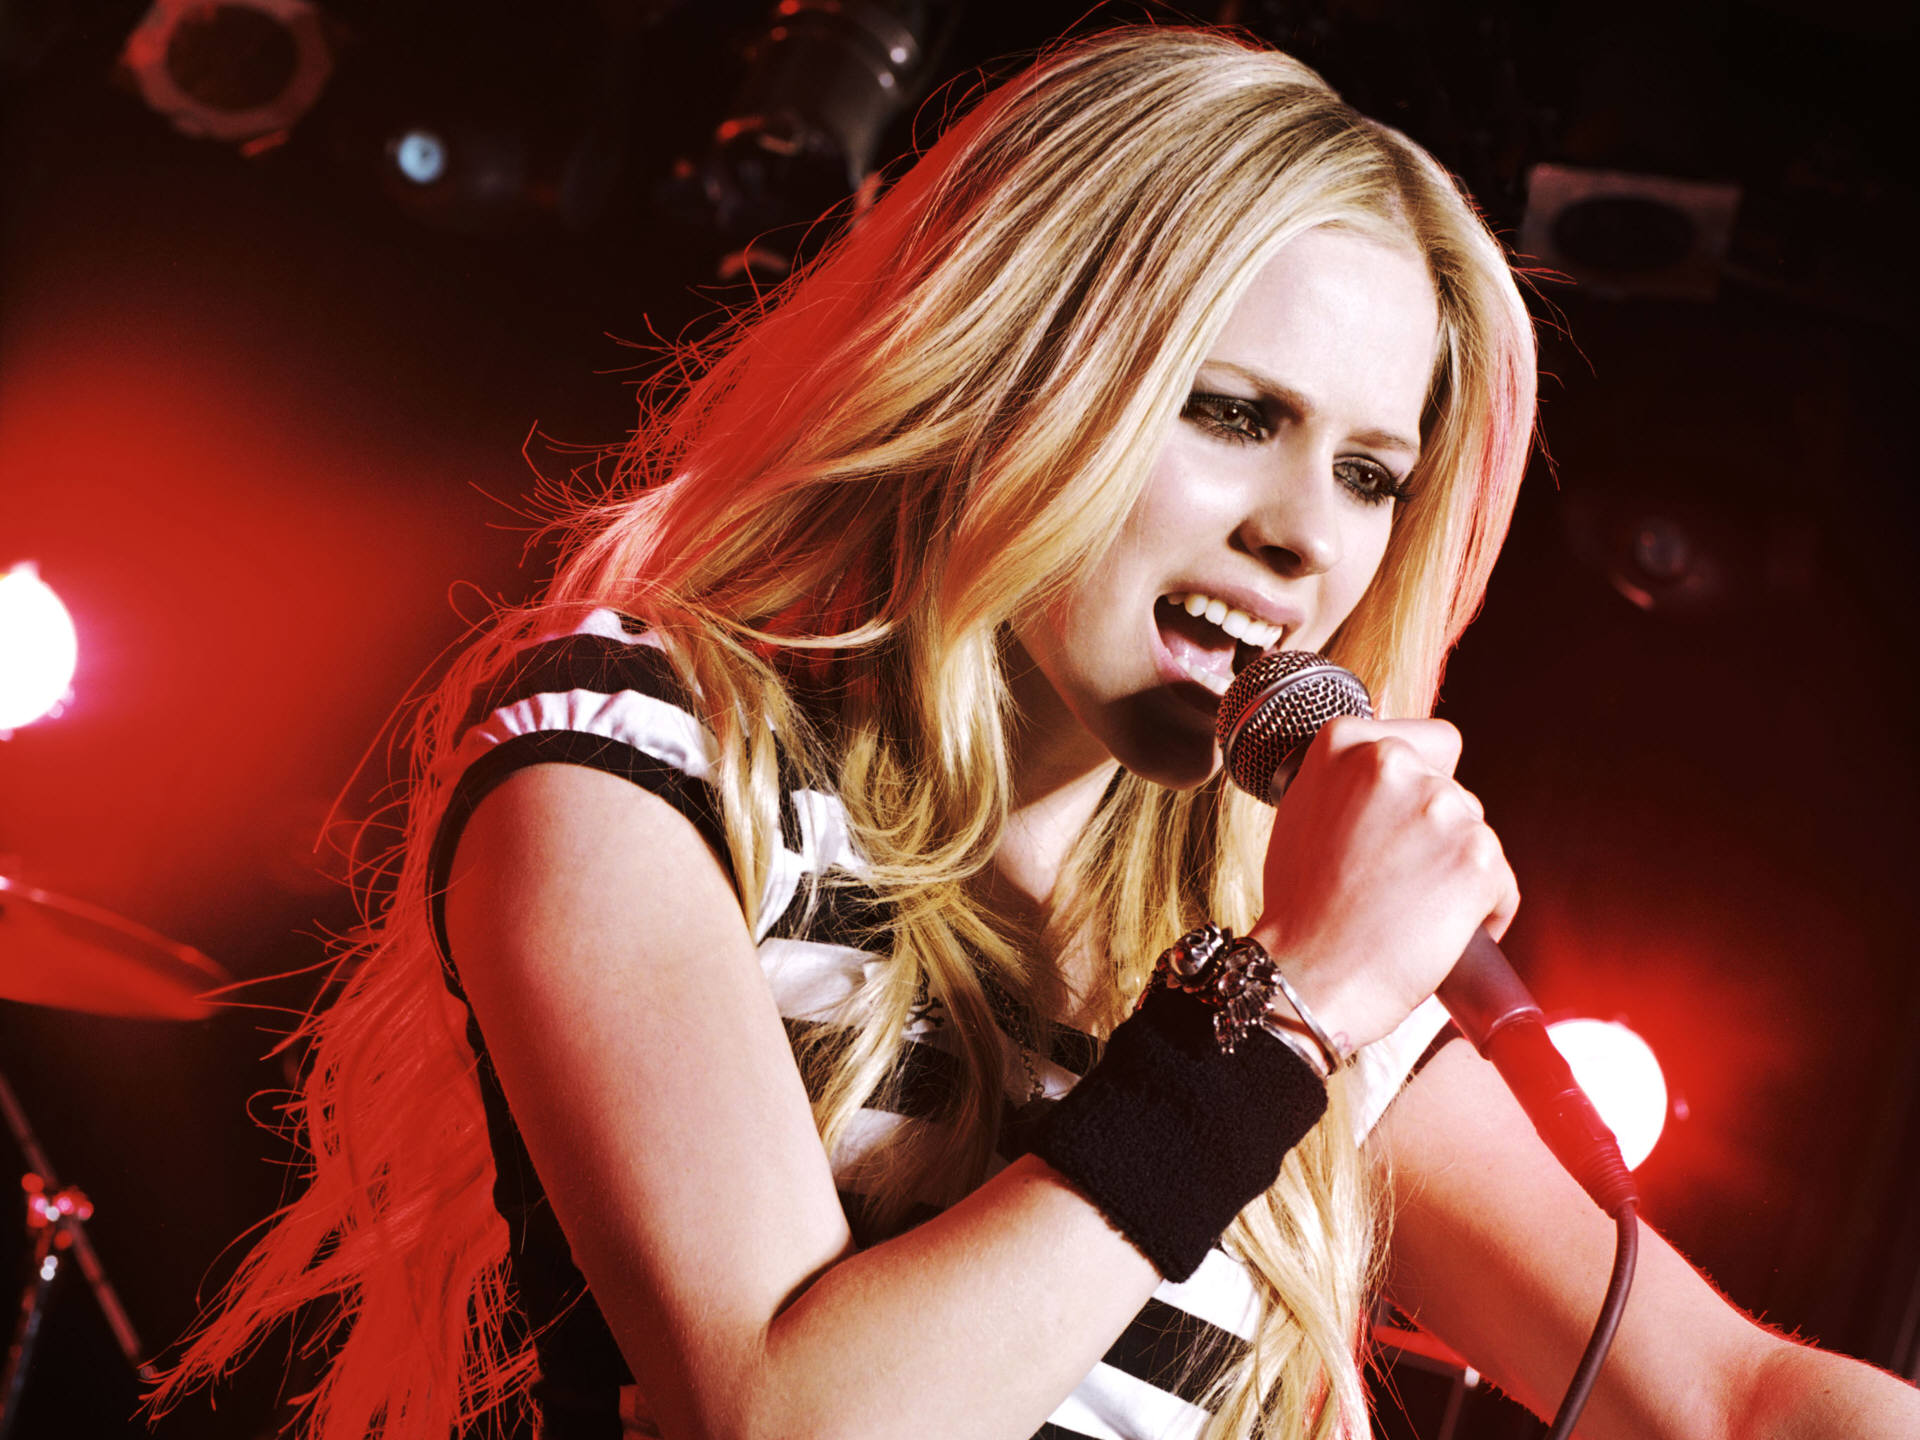 Avril Lavigne Wallpapers A22